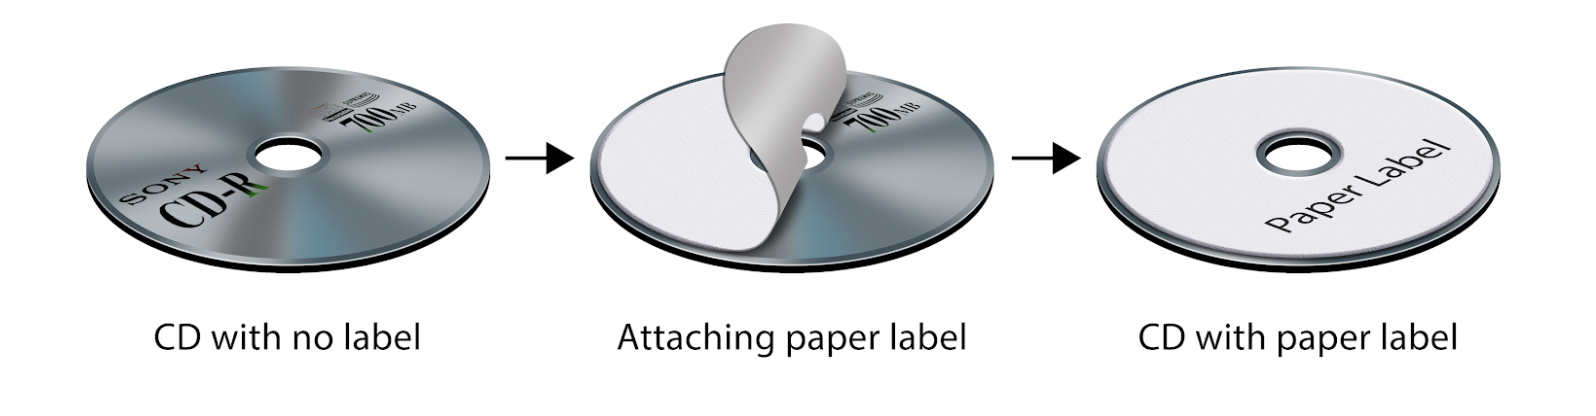 Figure 1. Copied CD with paper label on top